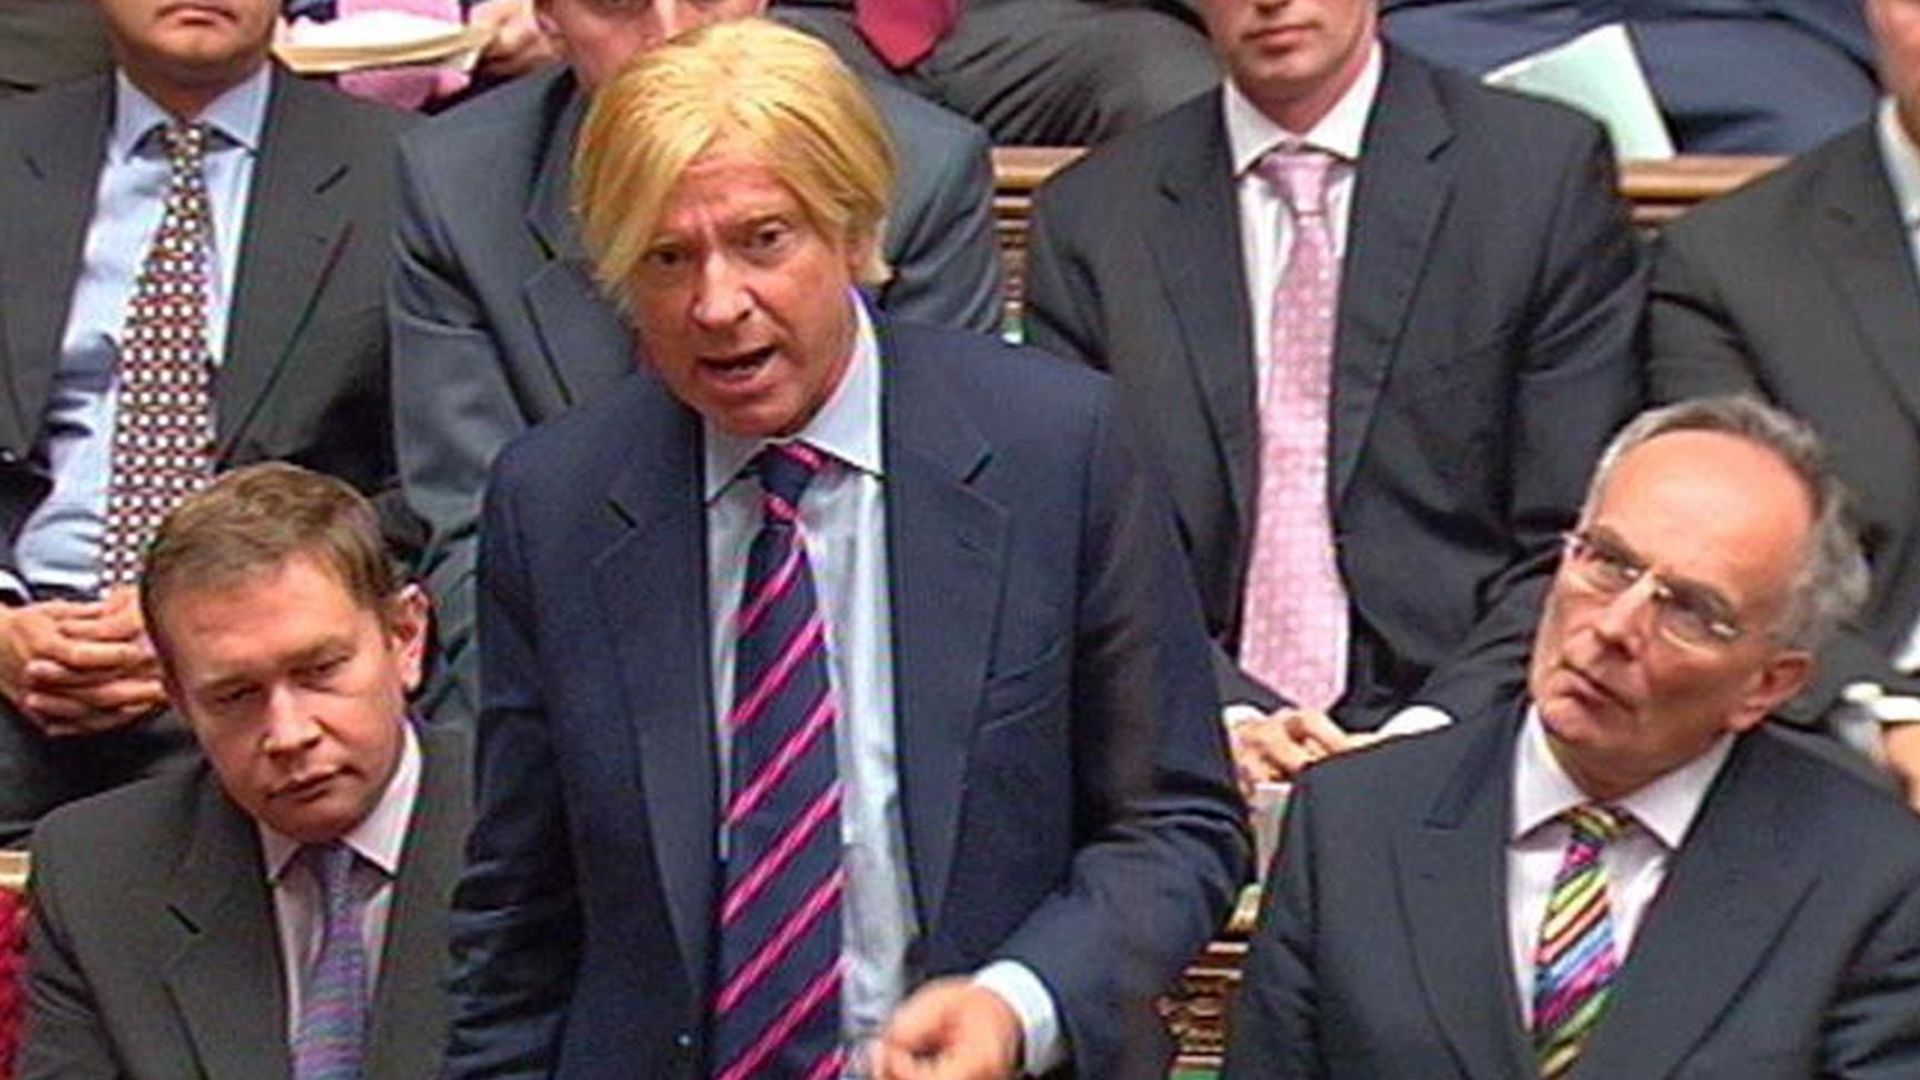 Michael Fabricant MP for Lichfield, speaks during Prime Minister's Questions in the House of Commons - Credit: PA